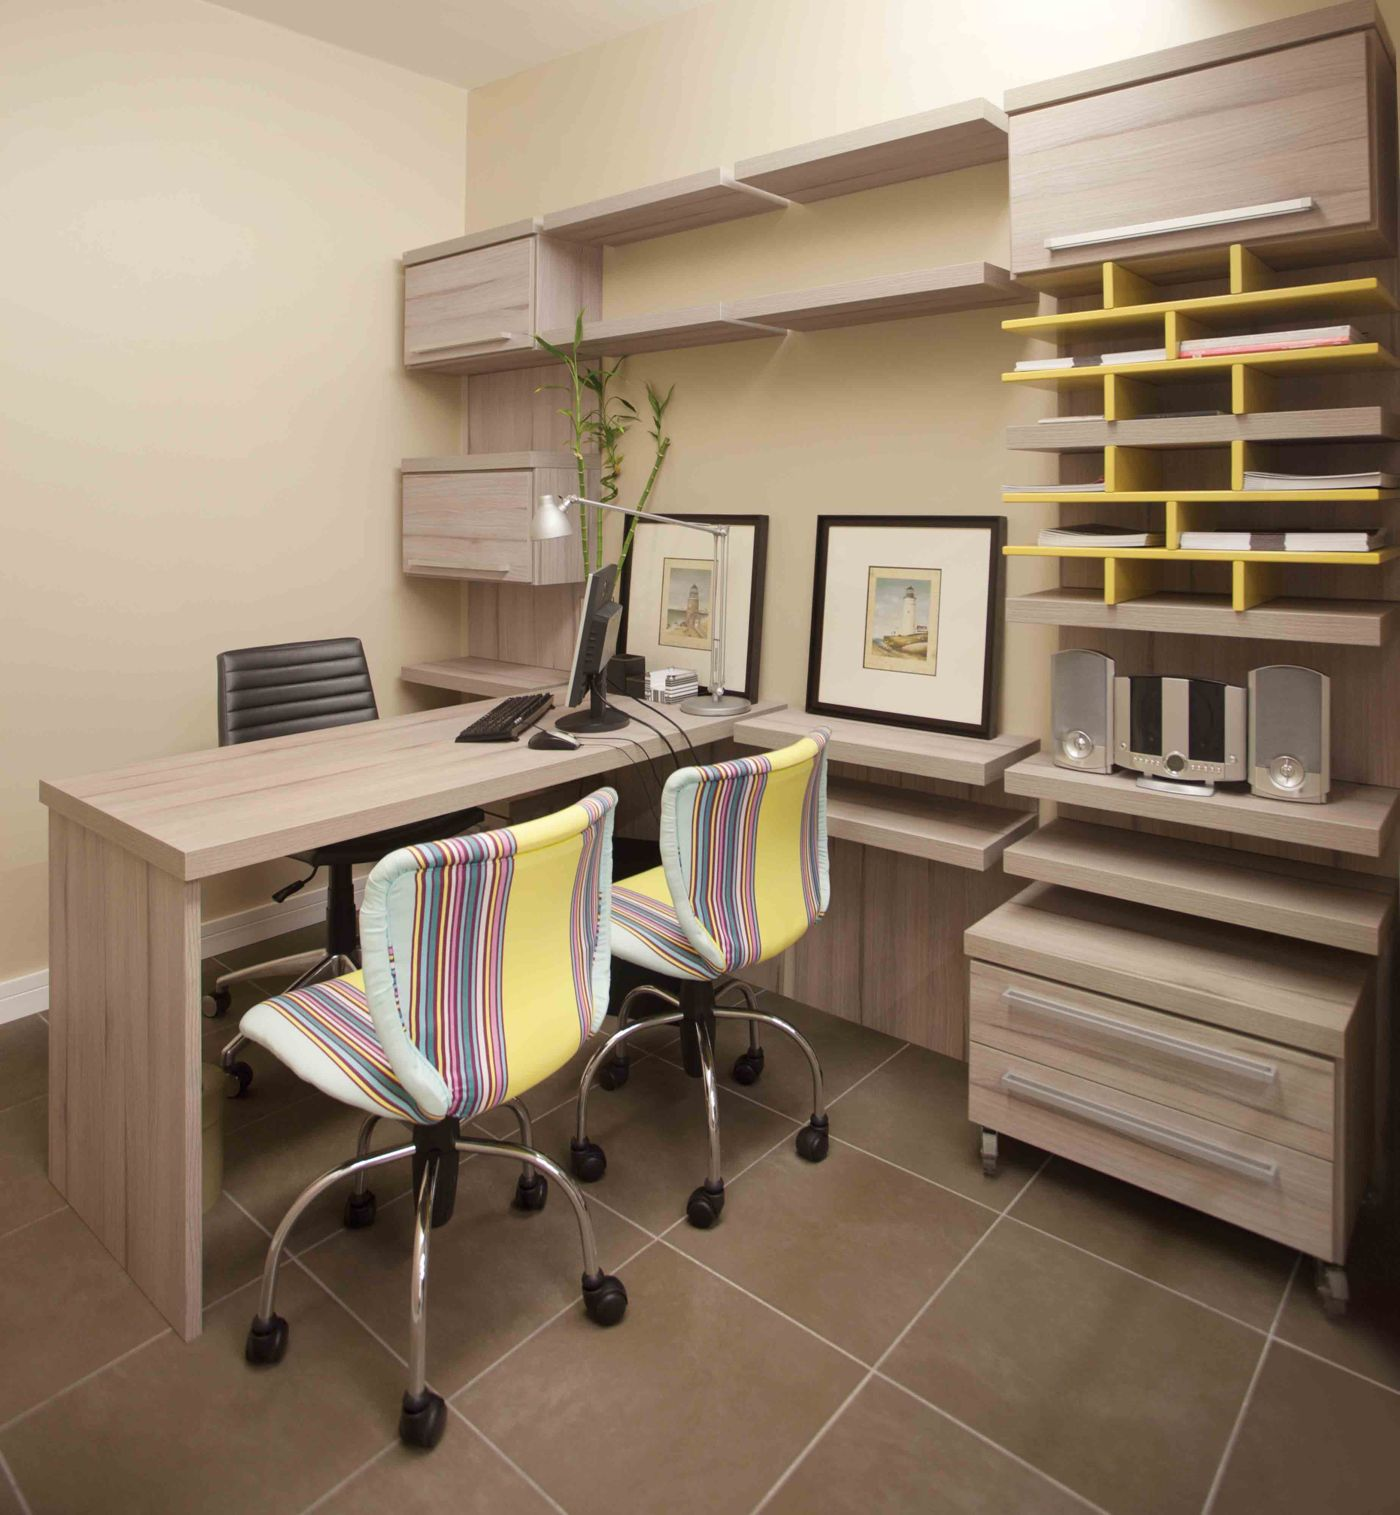 Excellent Home Office Ideas Pictures Zeevolve Inspiration. Home Decor Sites.  Internal Design. Best Interior Design. Home Storage Ideas For Small Spaces.